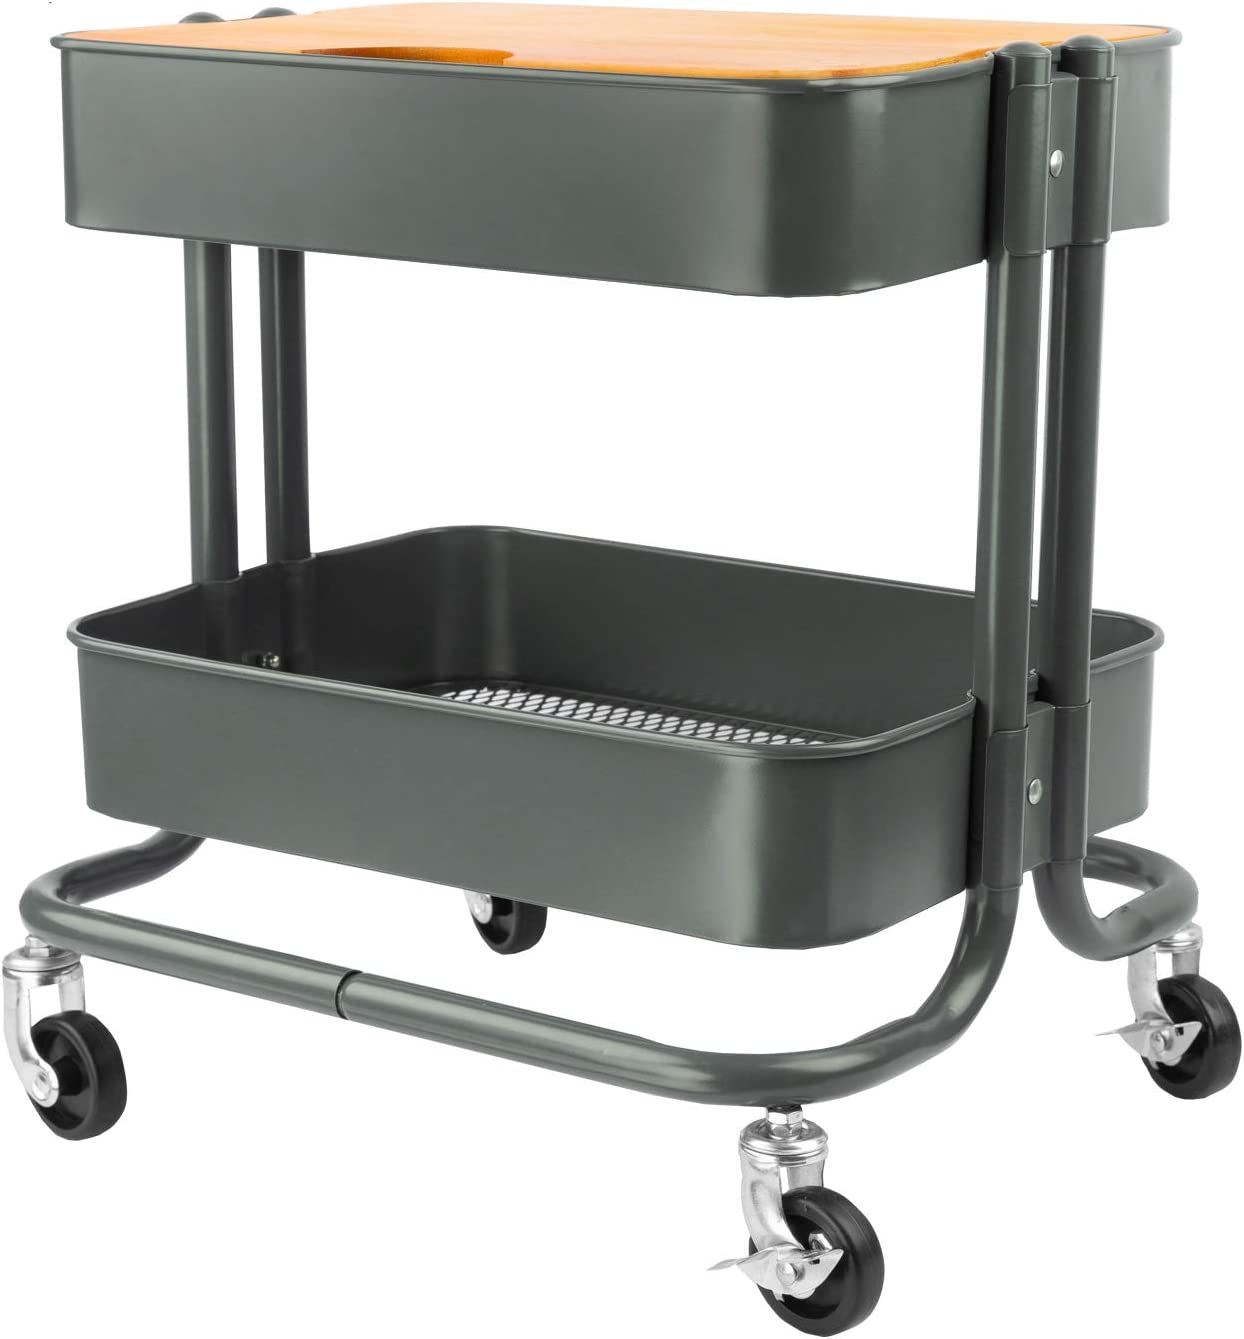 2 Tier Rolling Cart Metal Utility Cart With Wheels And Cover For Office Home Kitchen Organization Kitchen Dining